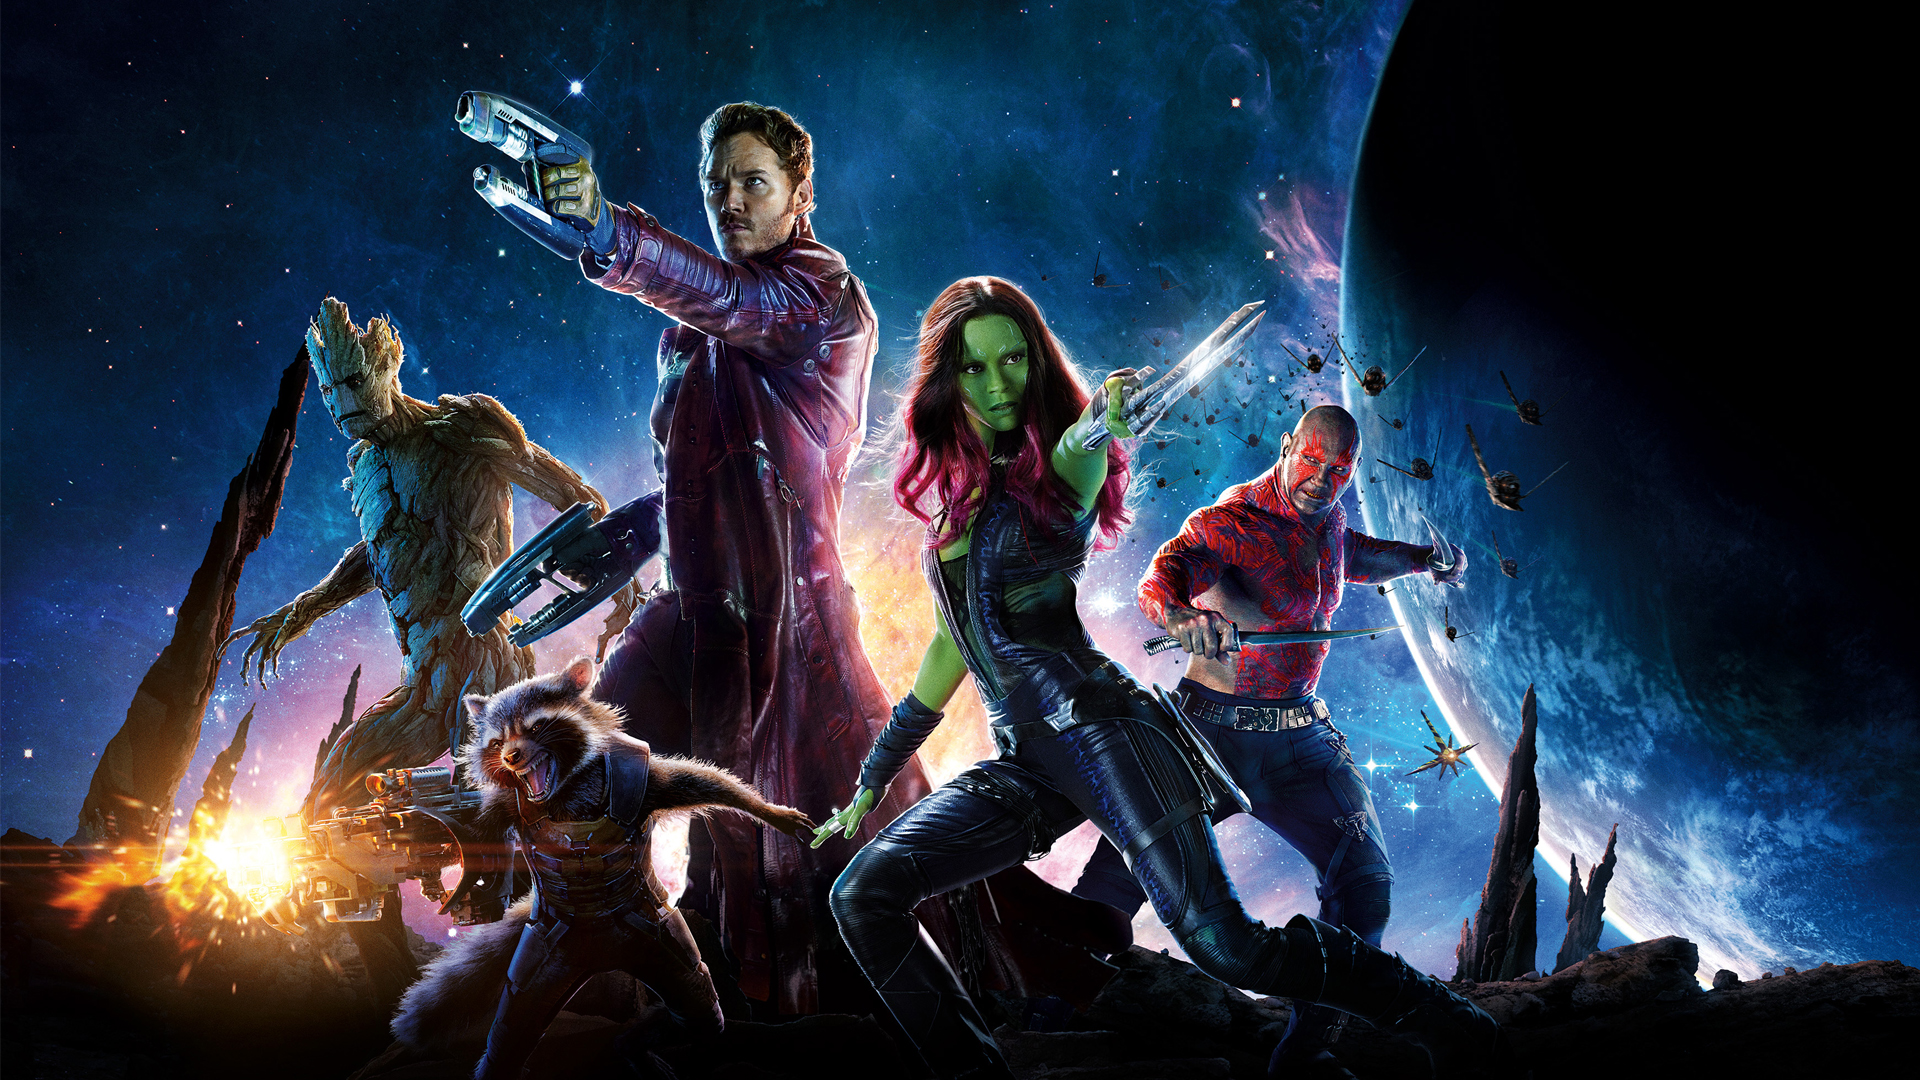 Guardians of the Galaxy wallpaper 2